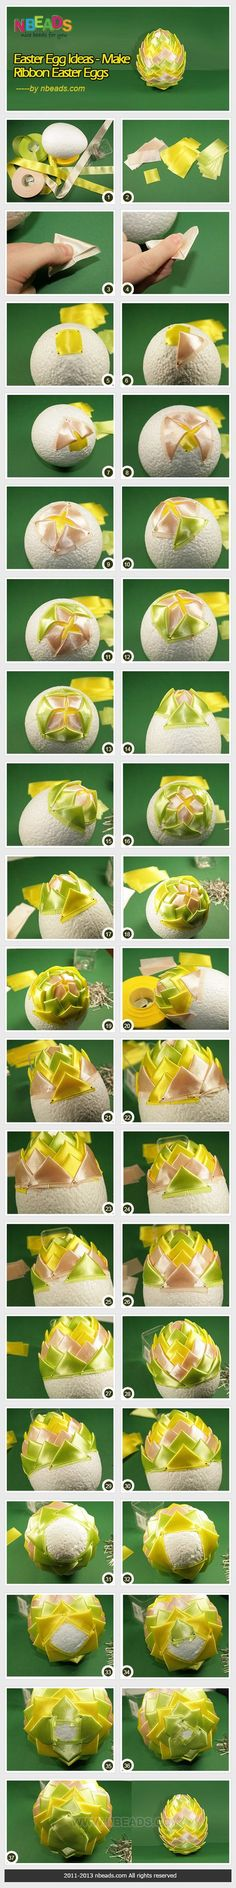 Easter Egg Ideas - Make Ribbon Easter Eggs diy crafts craft ideas diy crafts easter crafts easter diy easter craft Easter Eggs Kids, Making Easter Eggs, Quilted Christmas Ornaments, Christmas Balls, Egg Crafts, Easter Crafts, Spring Crafts, Holiday Crafts, Easter Egg Pictures